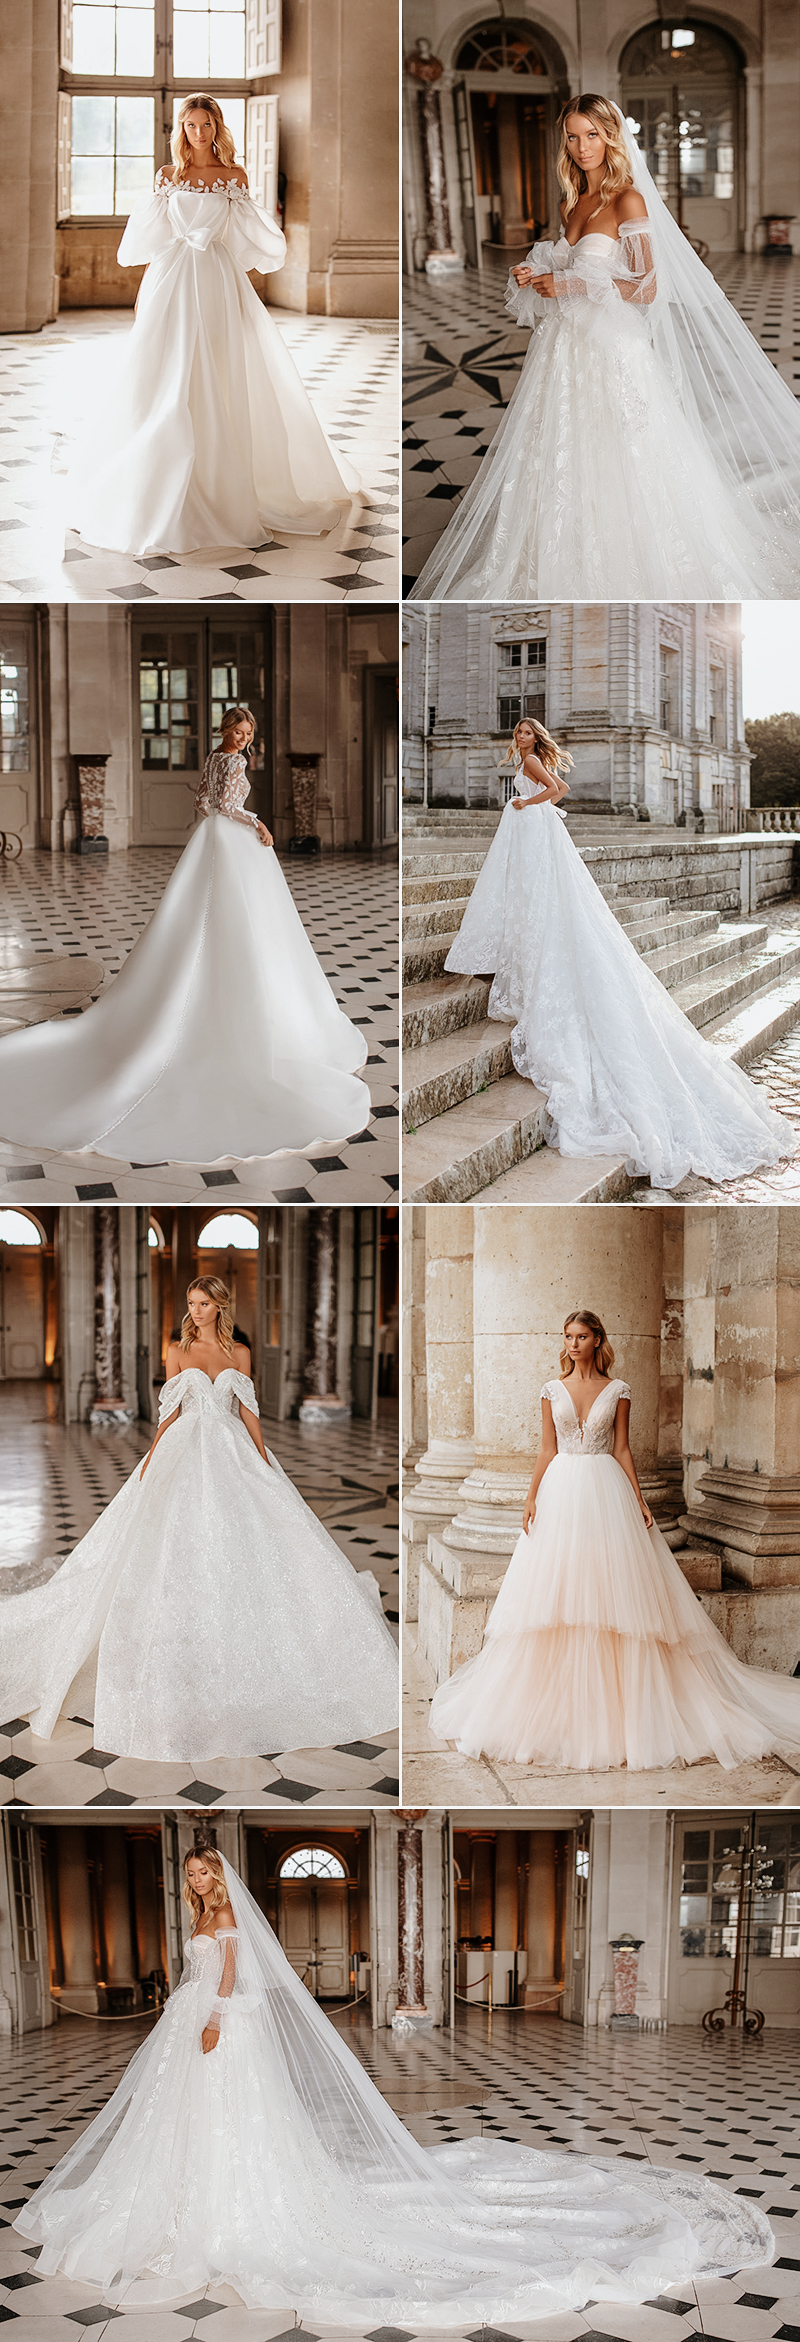 fashion fairy tale wedding dress